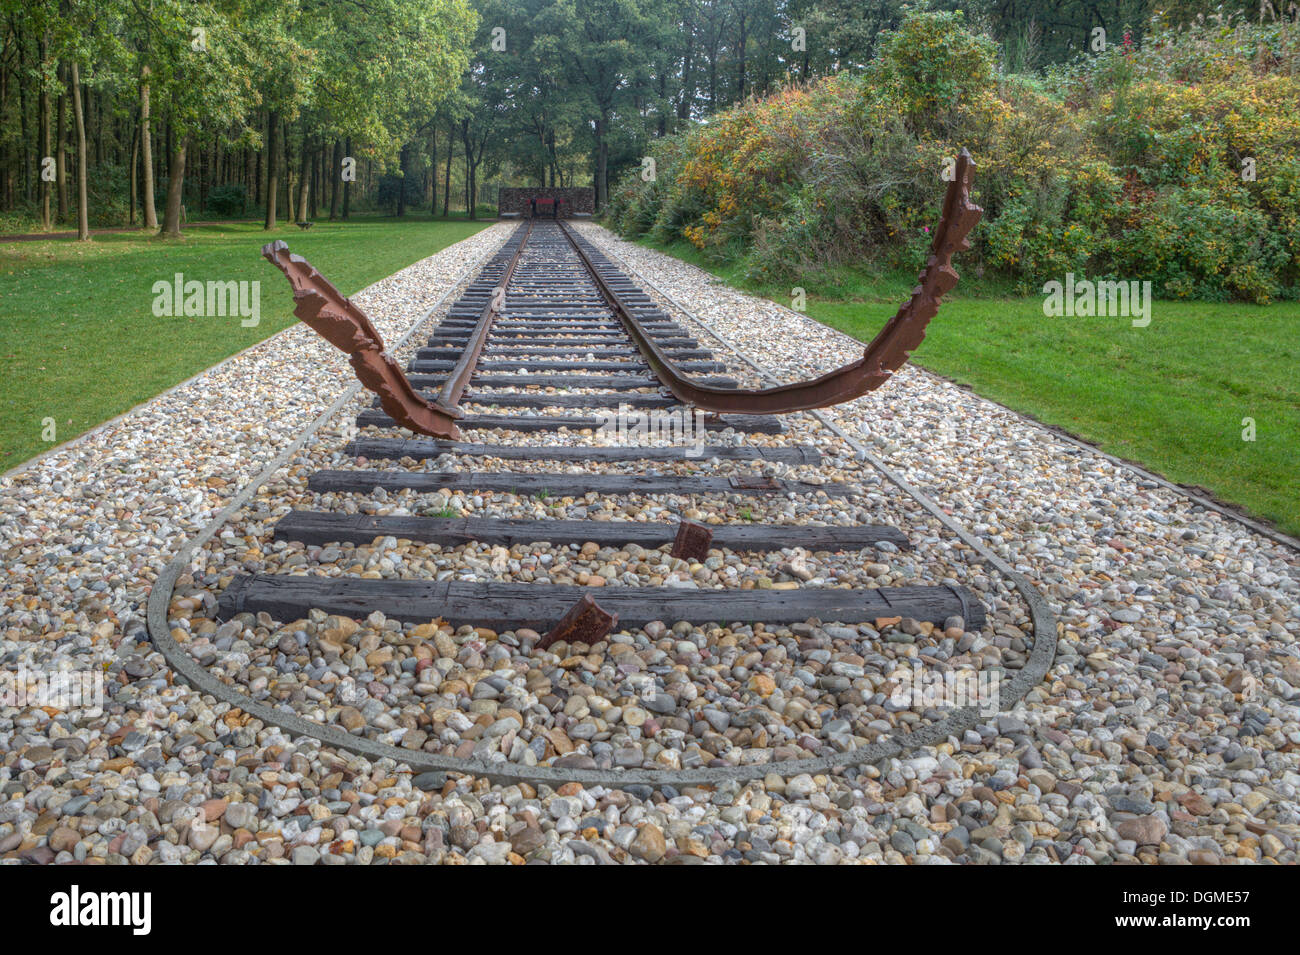 National Monument in Camp Westerbork, Netherlands - Stock Image